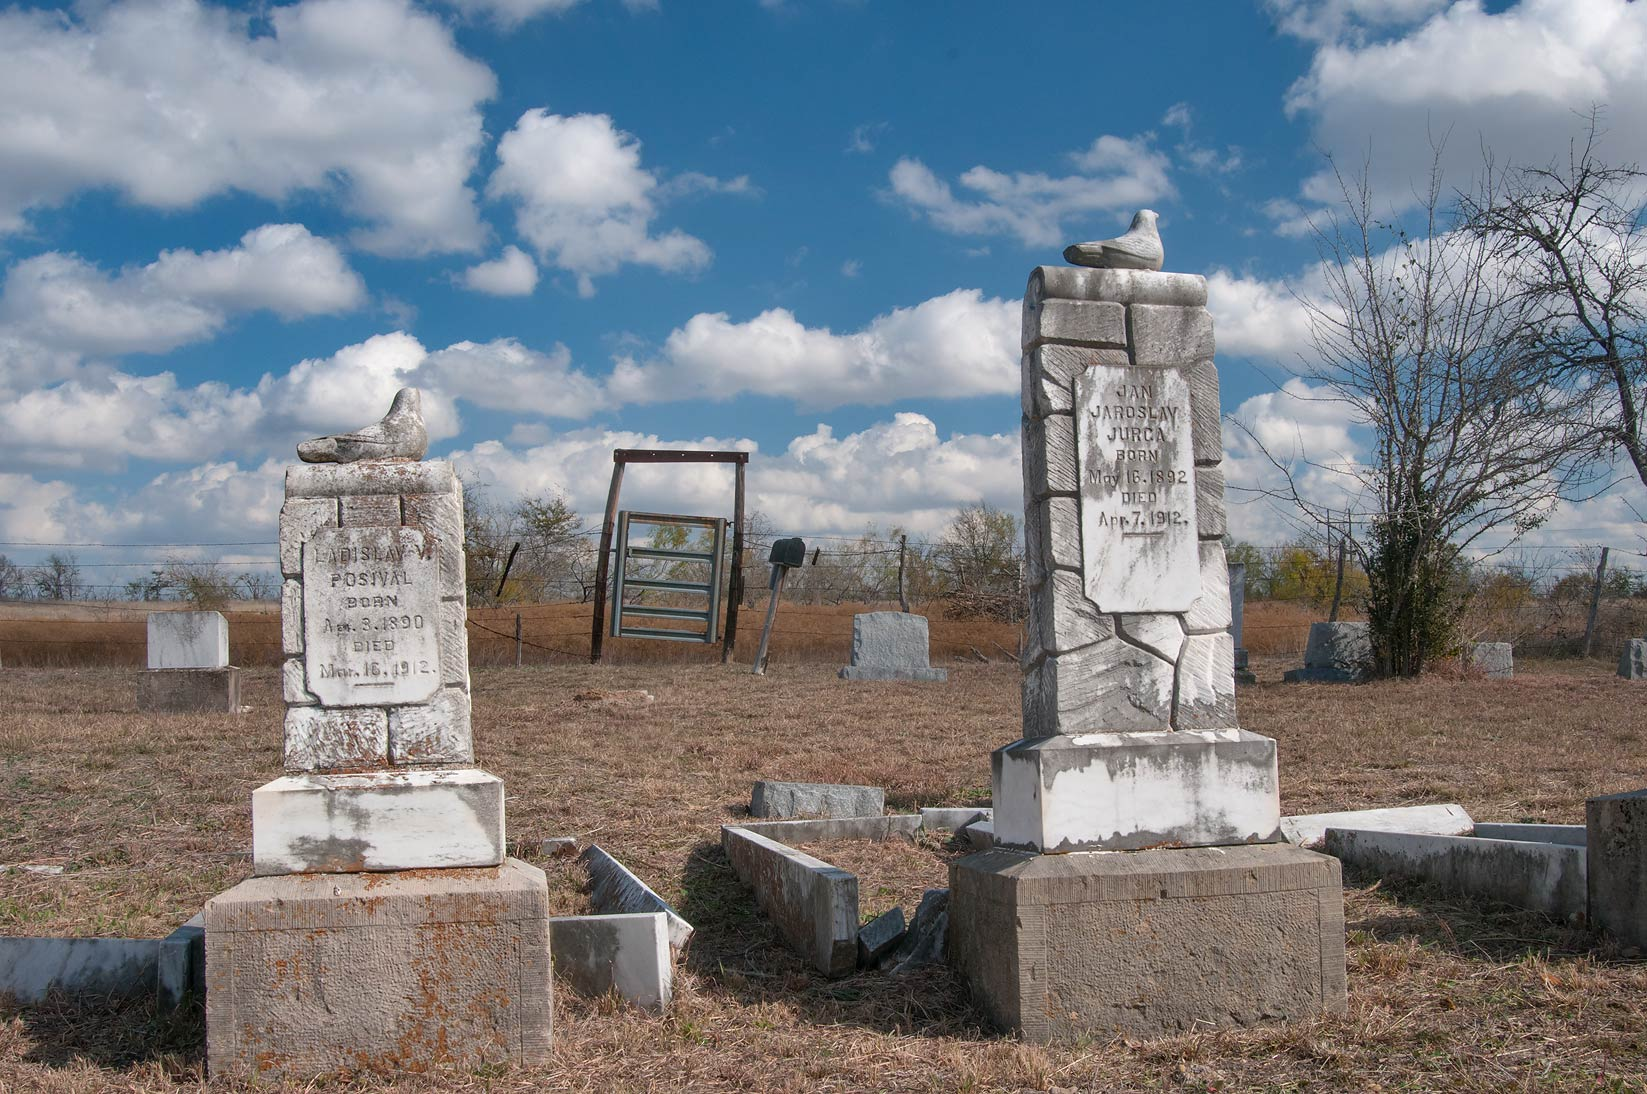 Tombstones in Bryant Station Cemetery near Buckholts. Texas